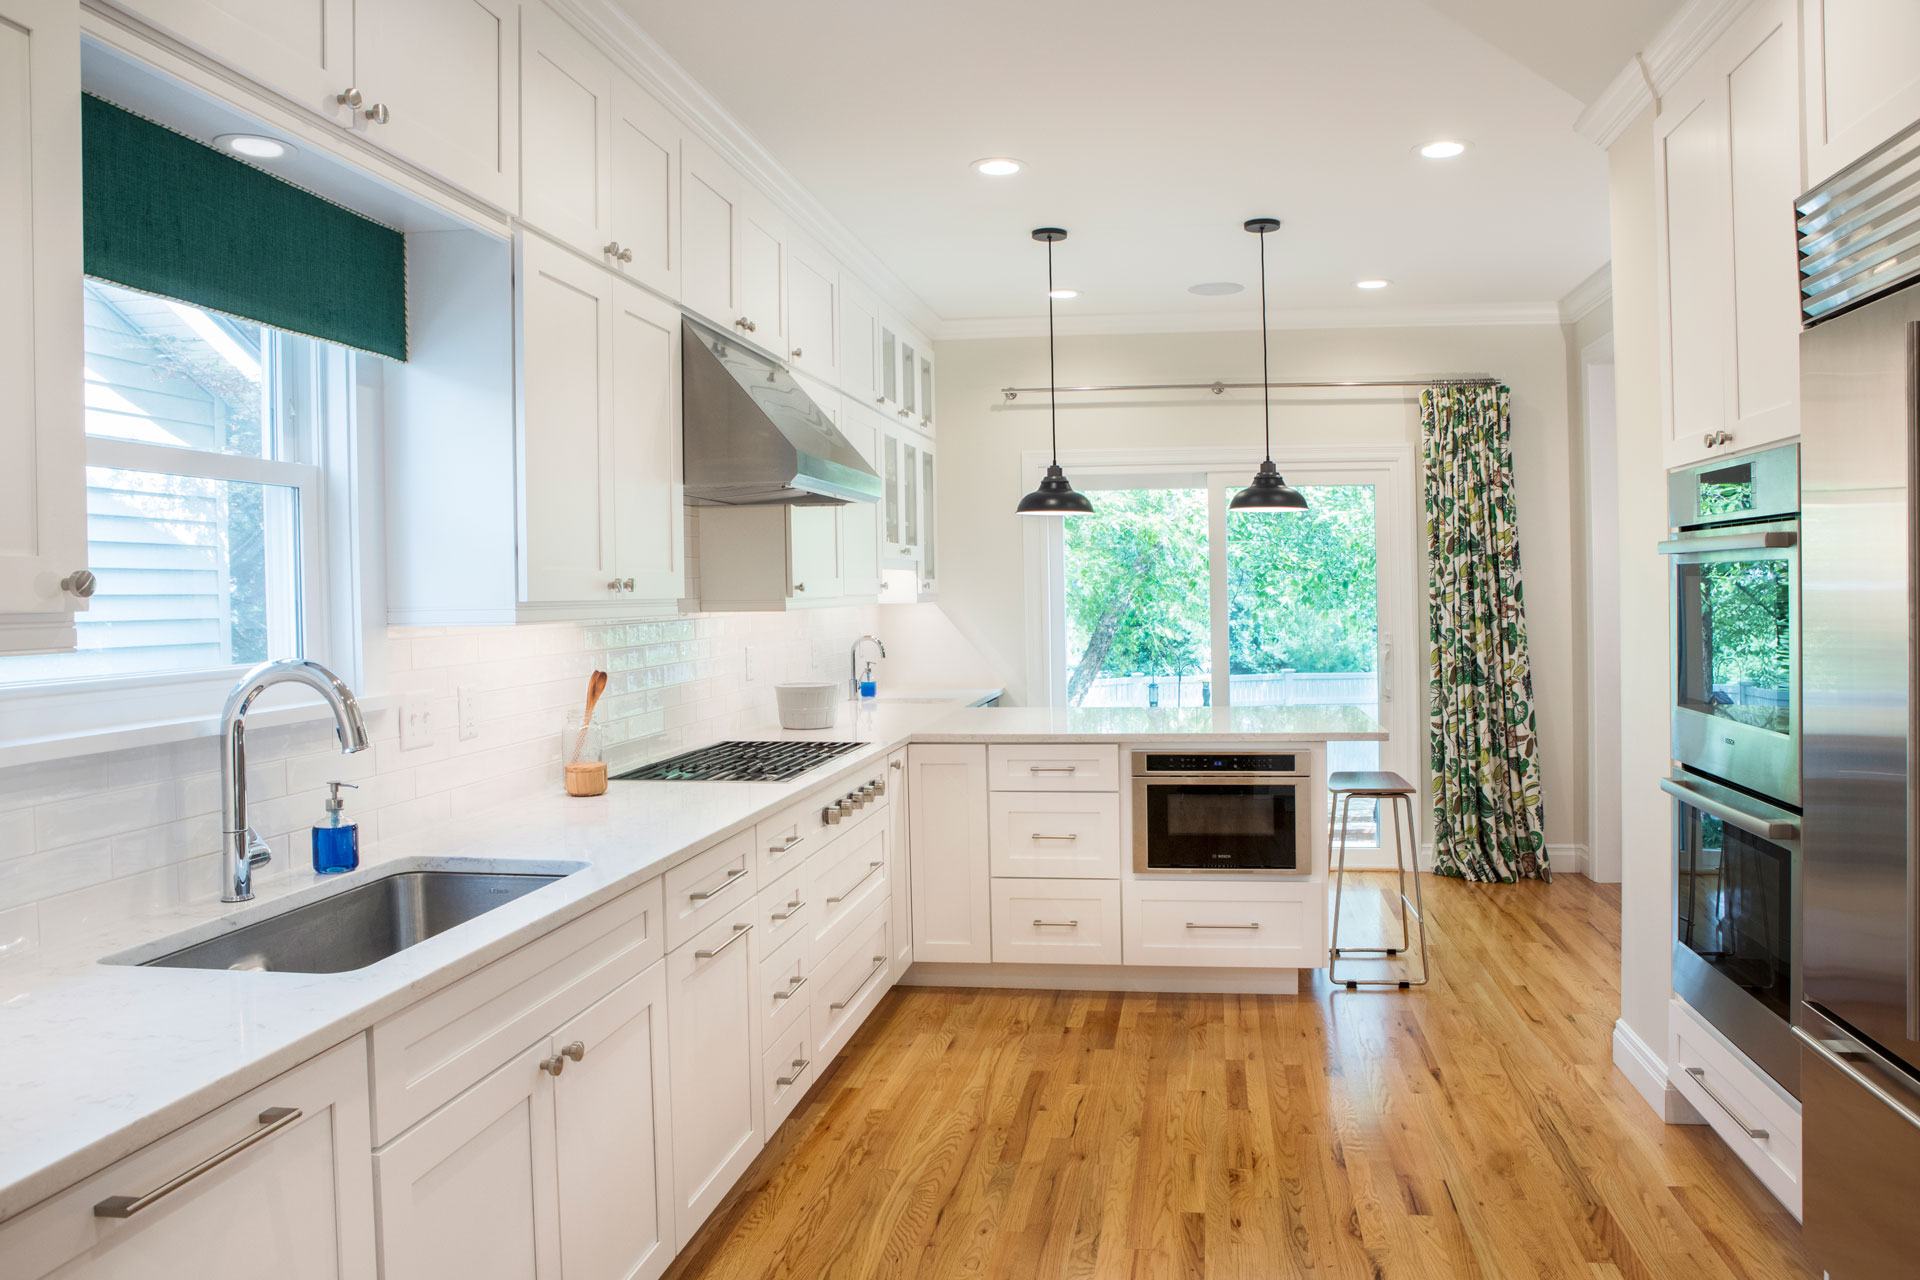 Roeser-Home-Remodeling-St-Louis-McCullough_kitchen-remodel-2